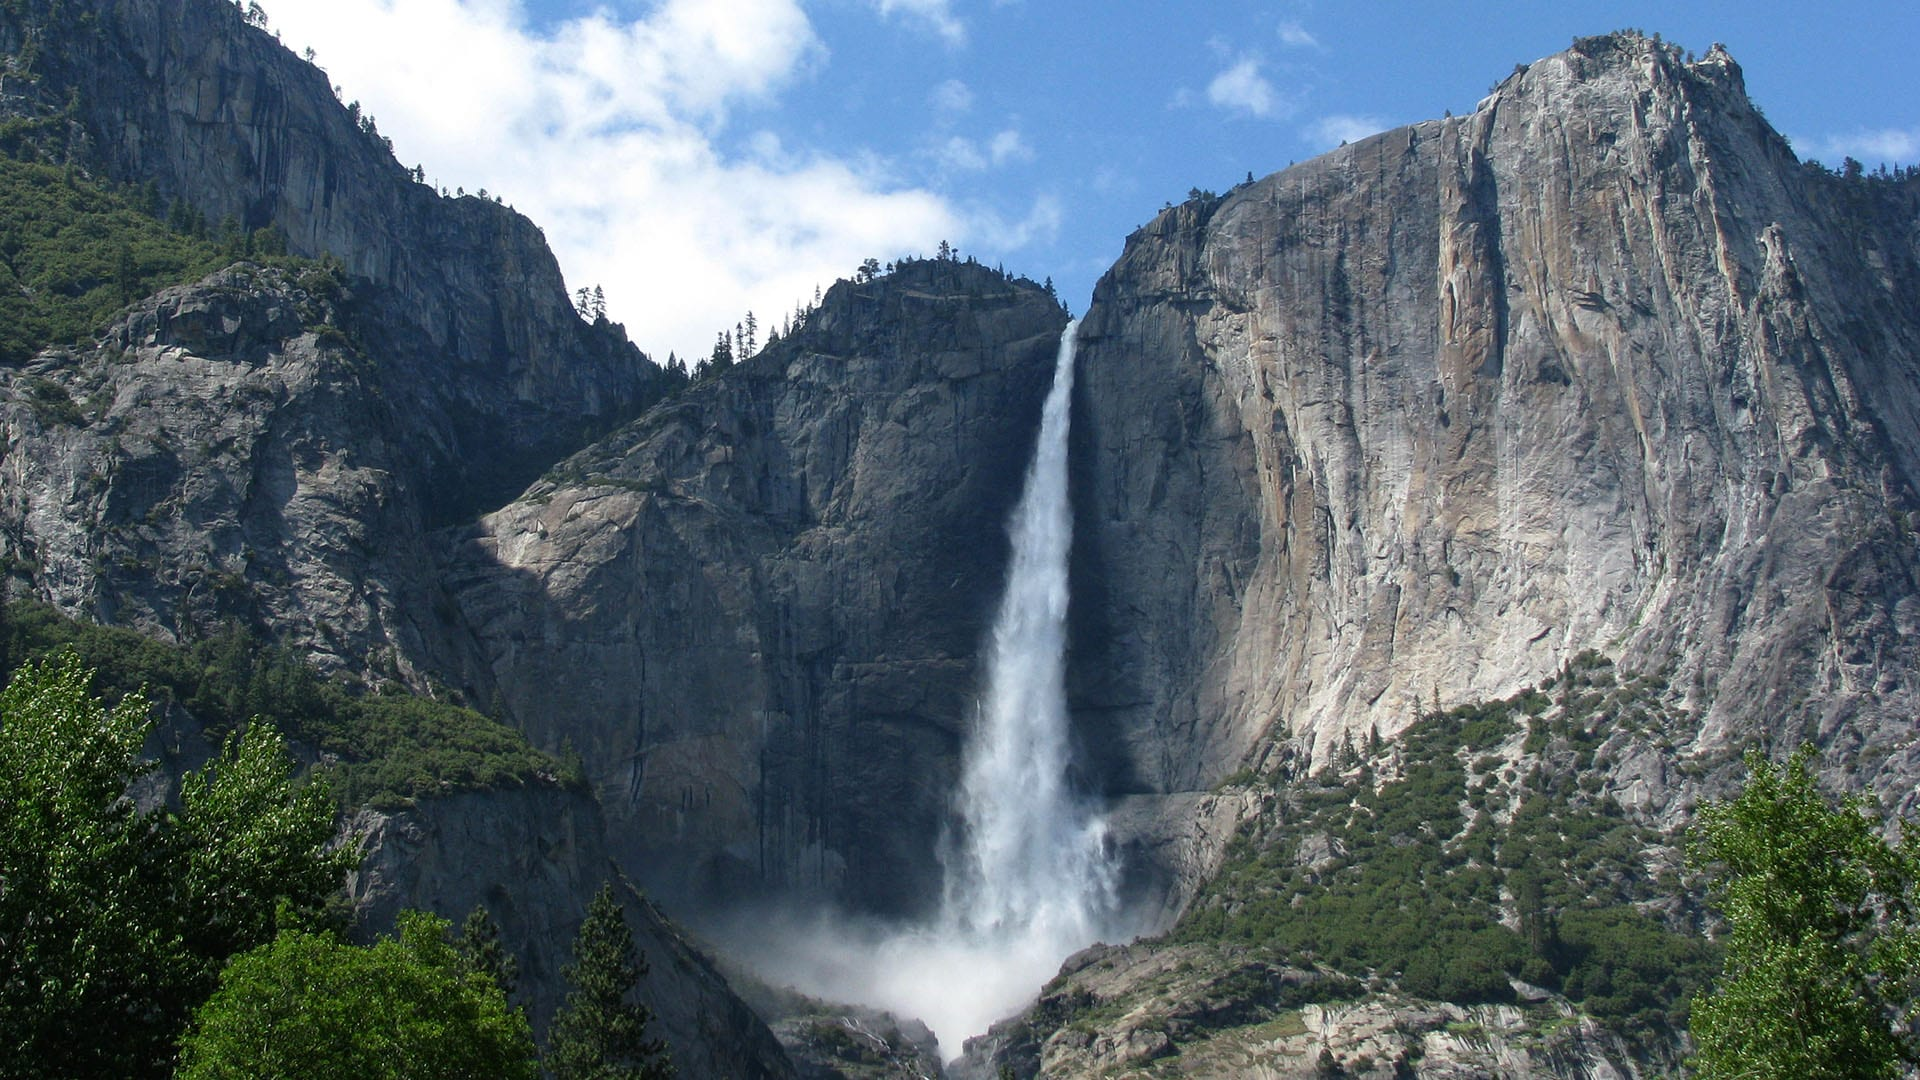 Road Trip from San Francisco to Yosemite - Pursuits with